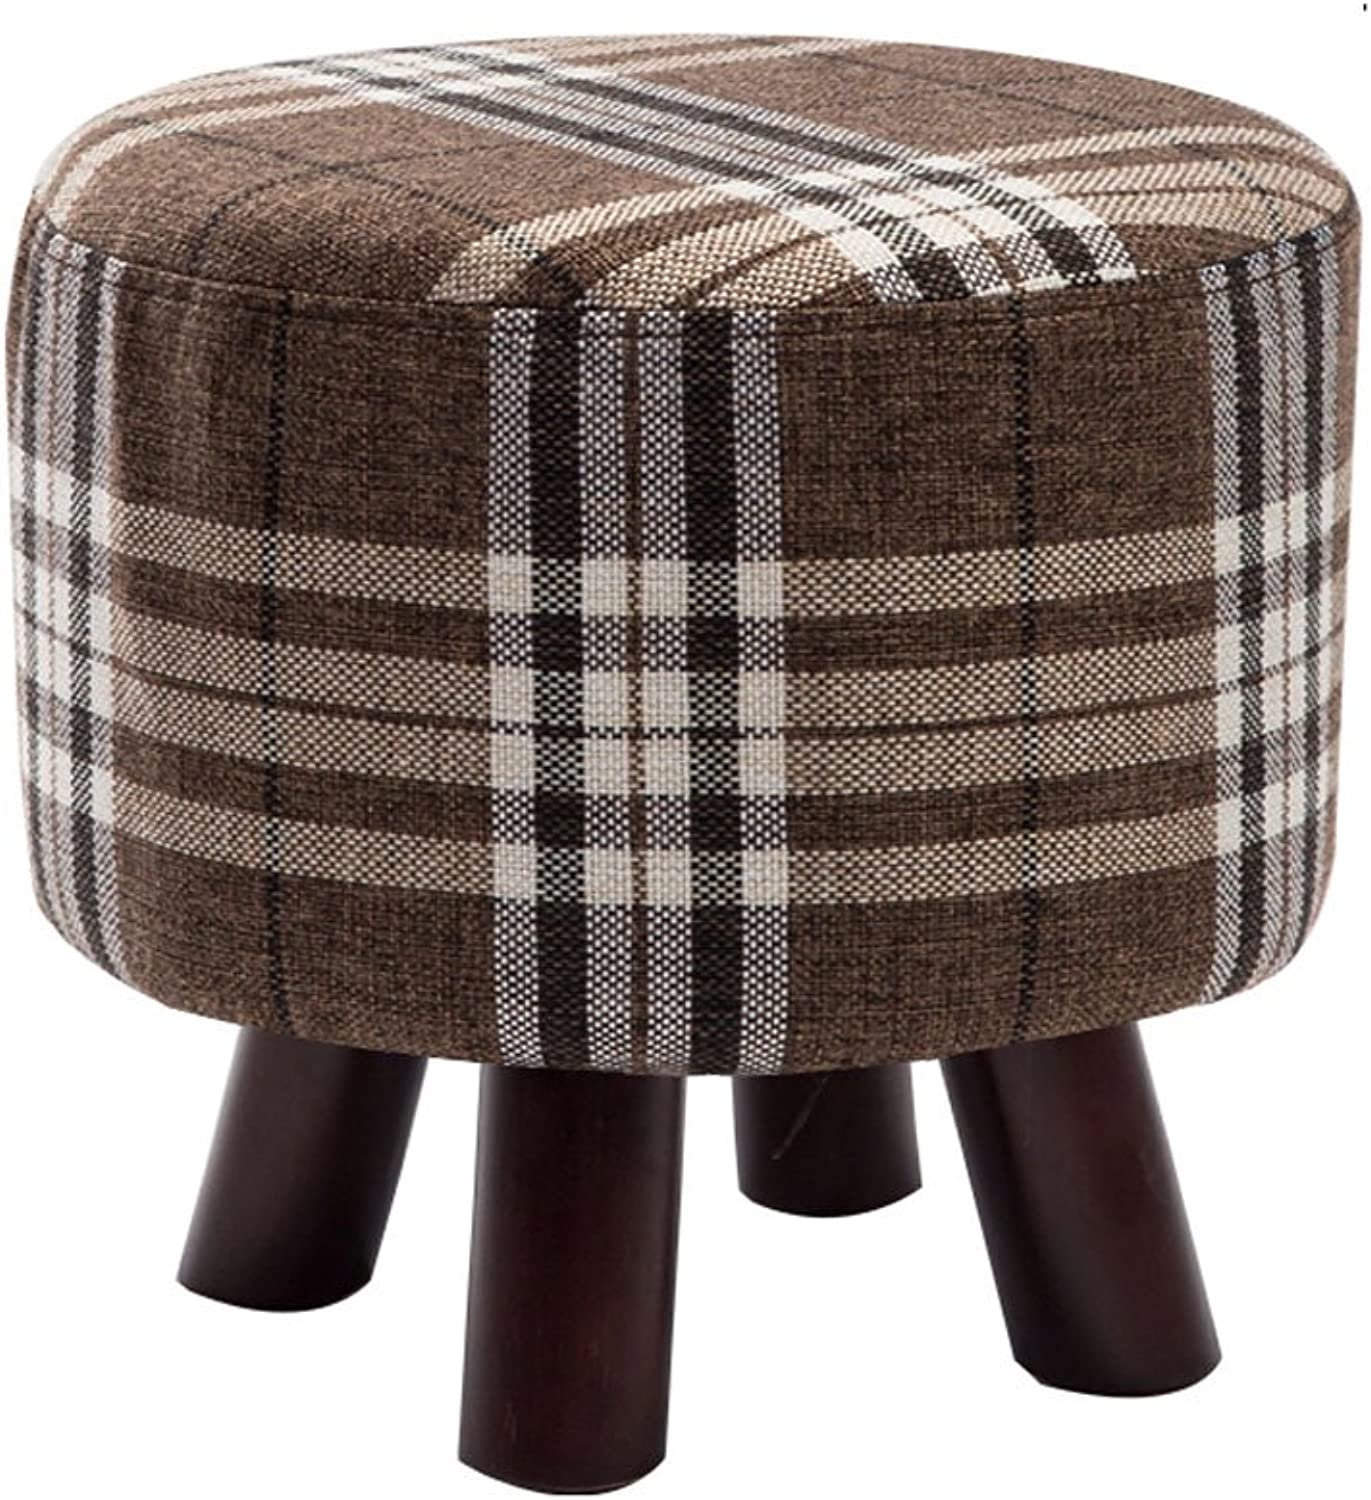 Stool Changing his shoes Stool Low Stool Solid Wood Footstool Small Bench Sofa Stool Round Stool Fashion Creative (color    2, Size   Large)